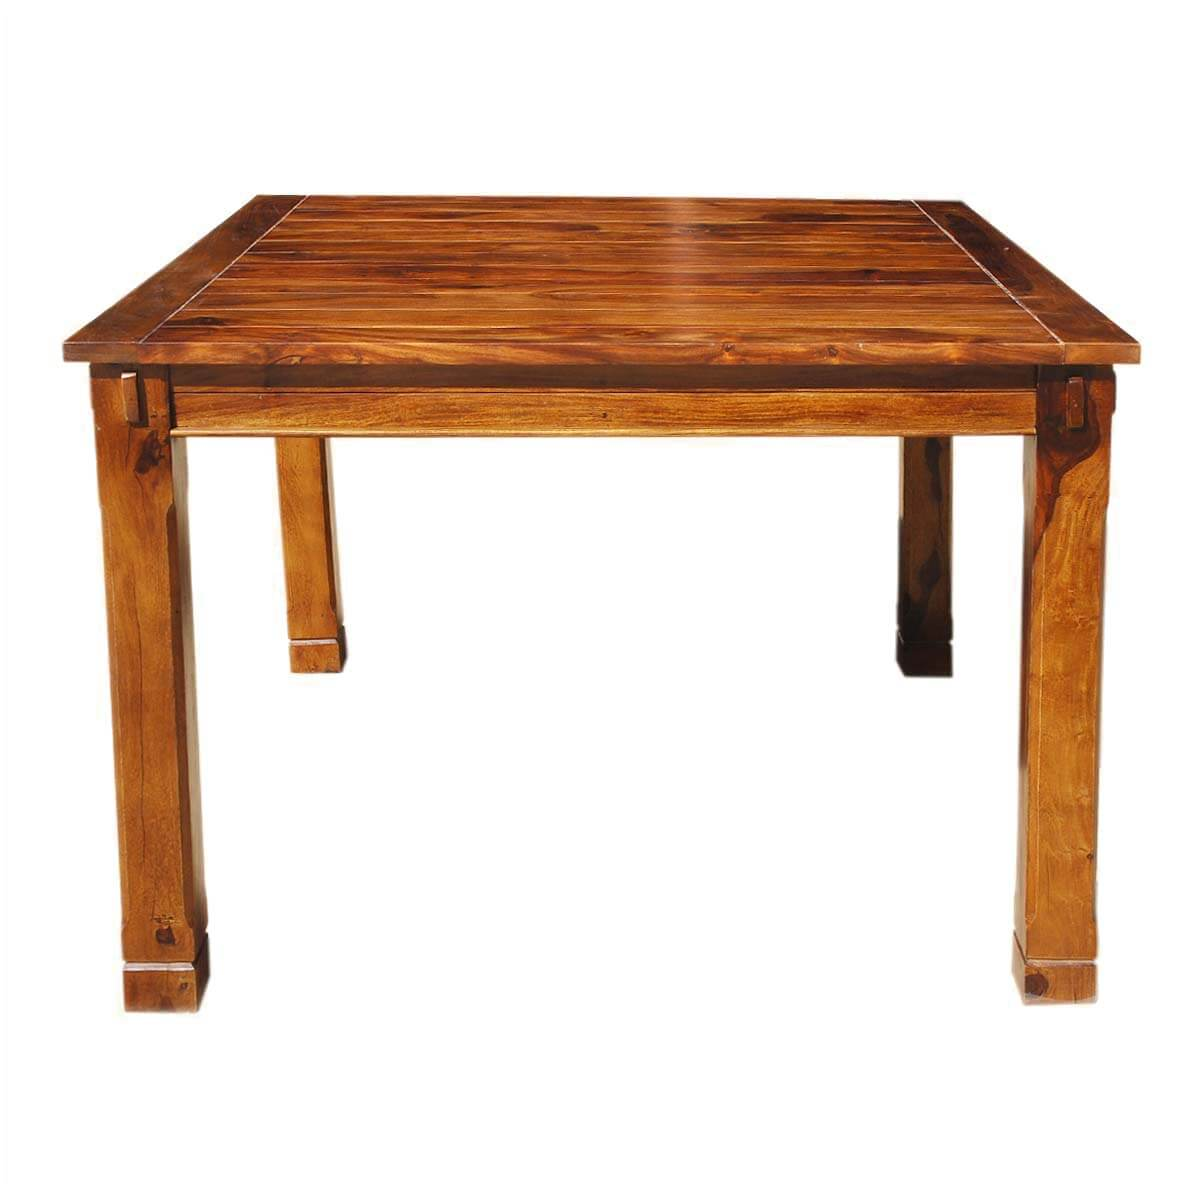 Rustic solid wood square counter height dining table for Rustic dining table